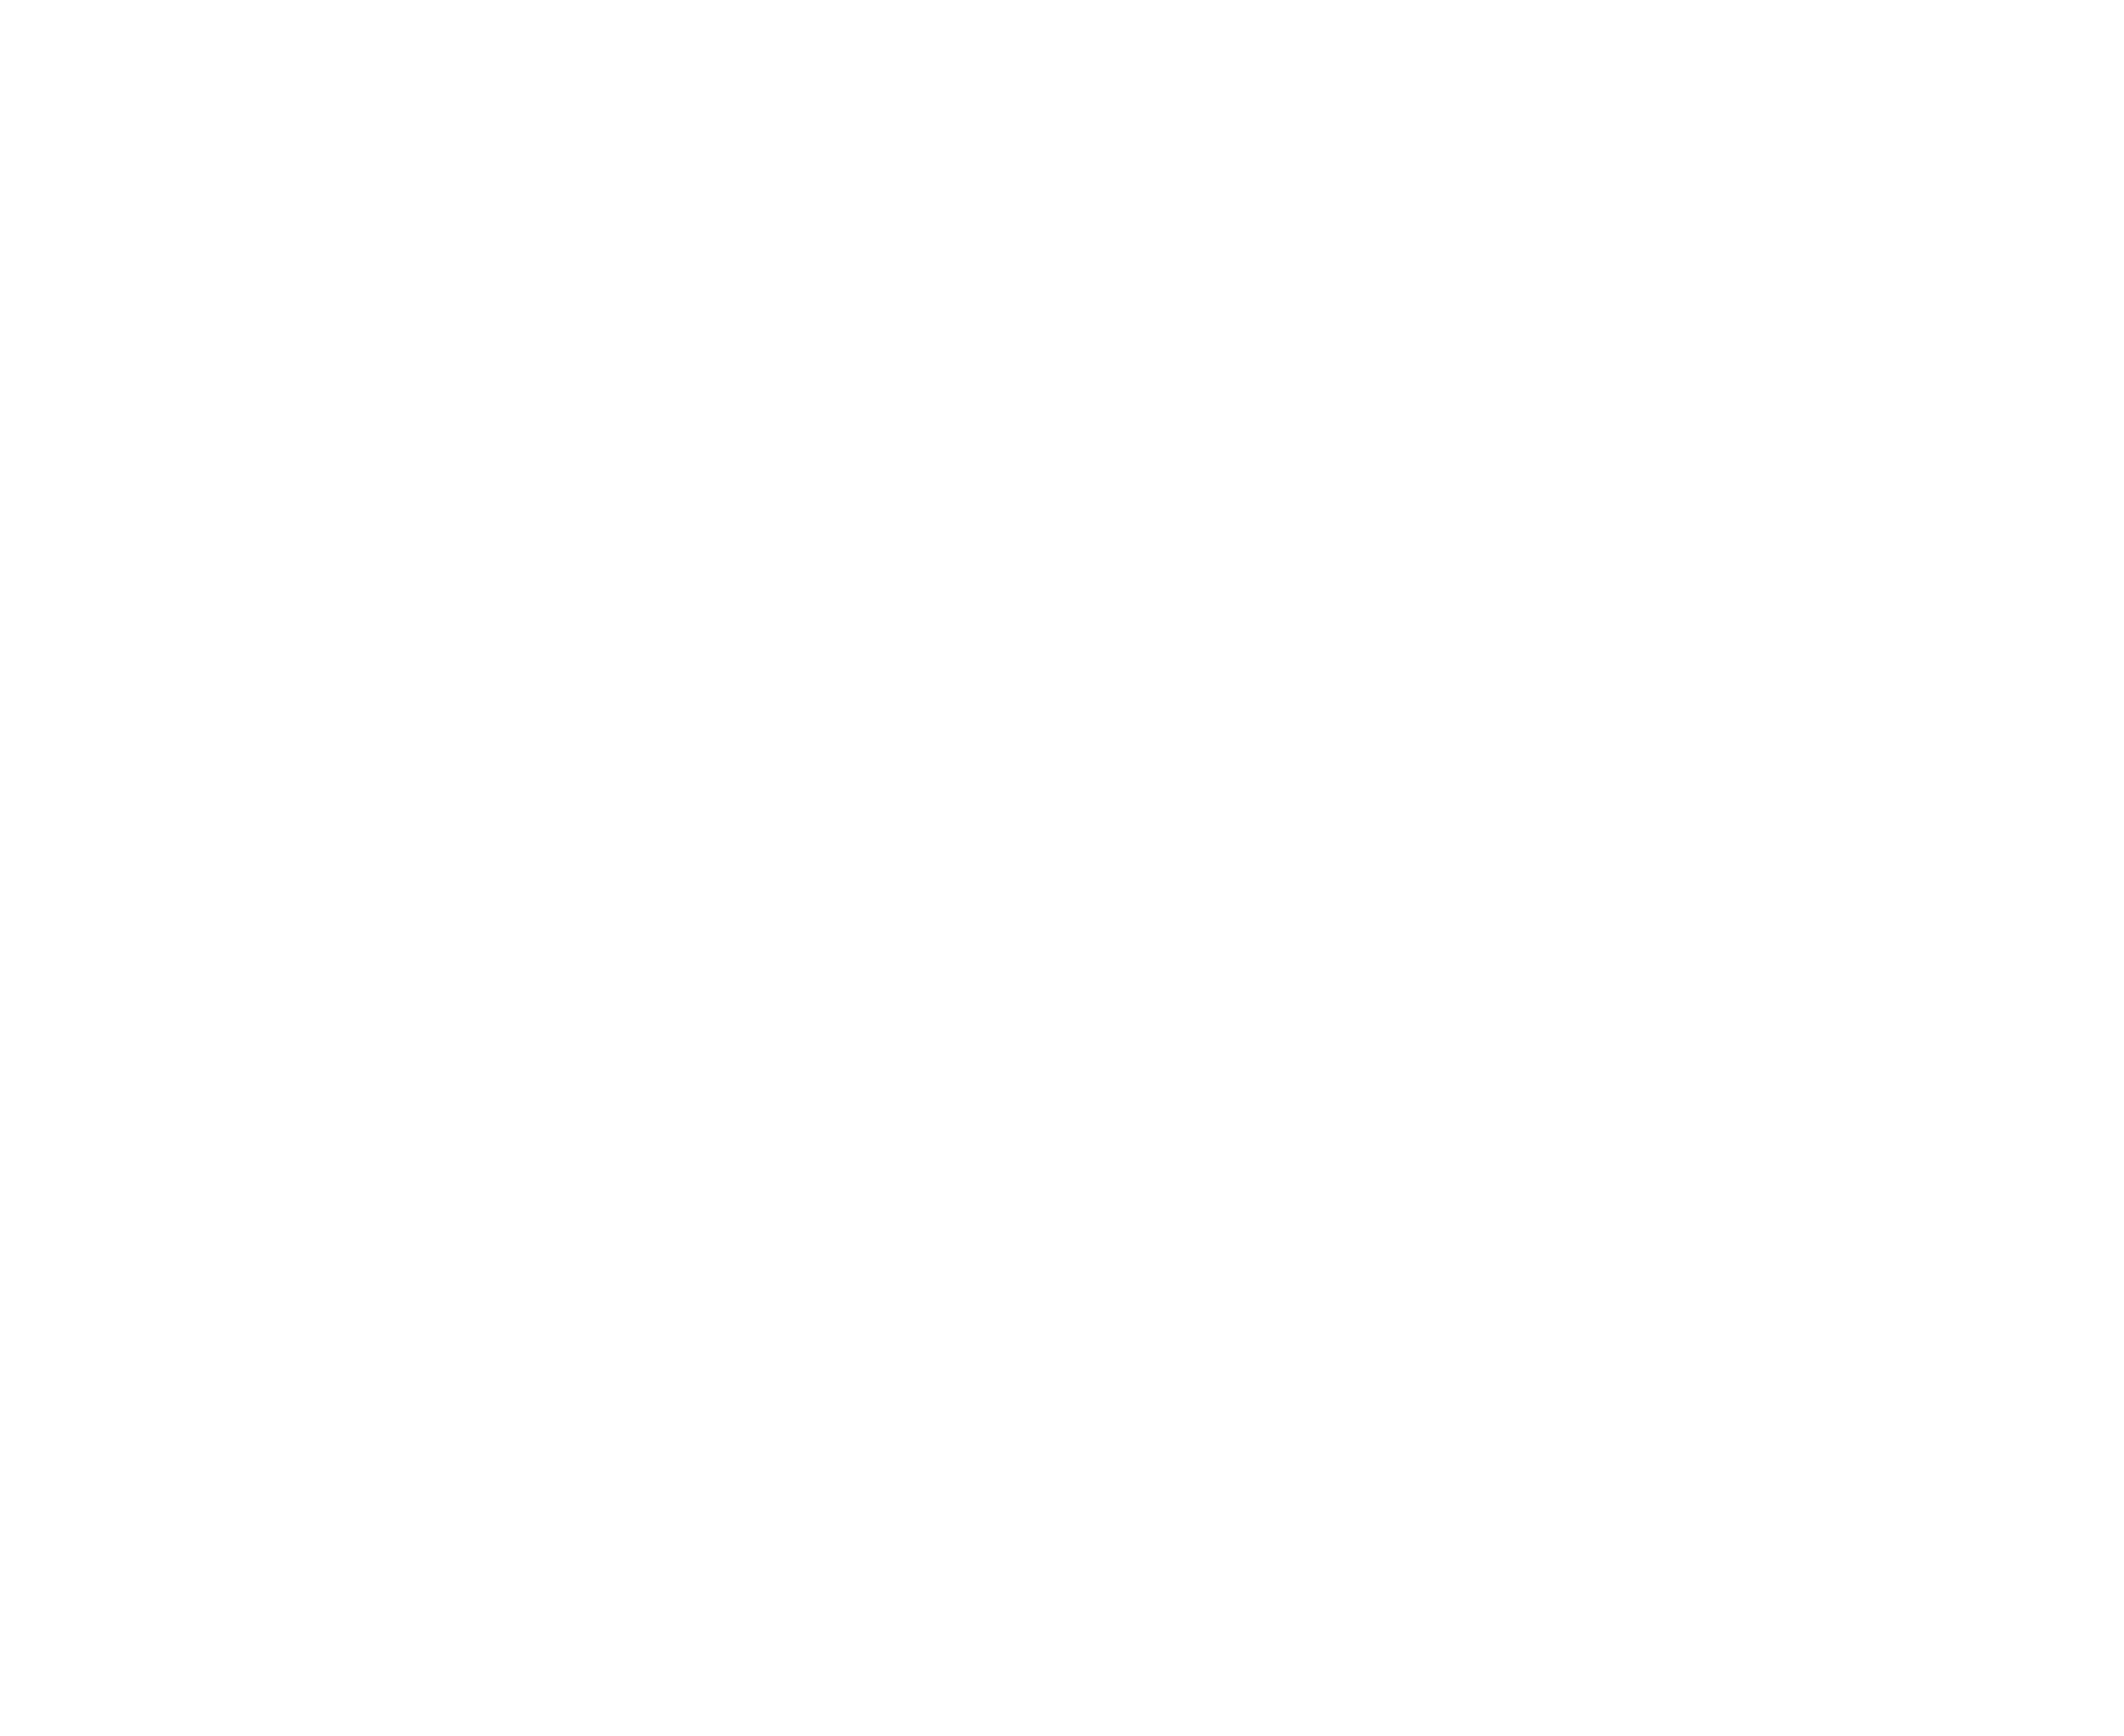 For the people who will stand up for what's right